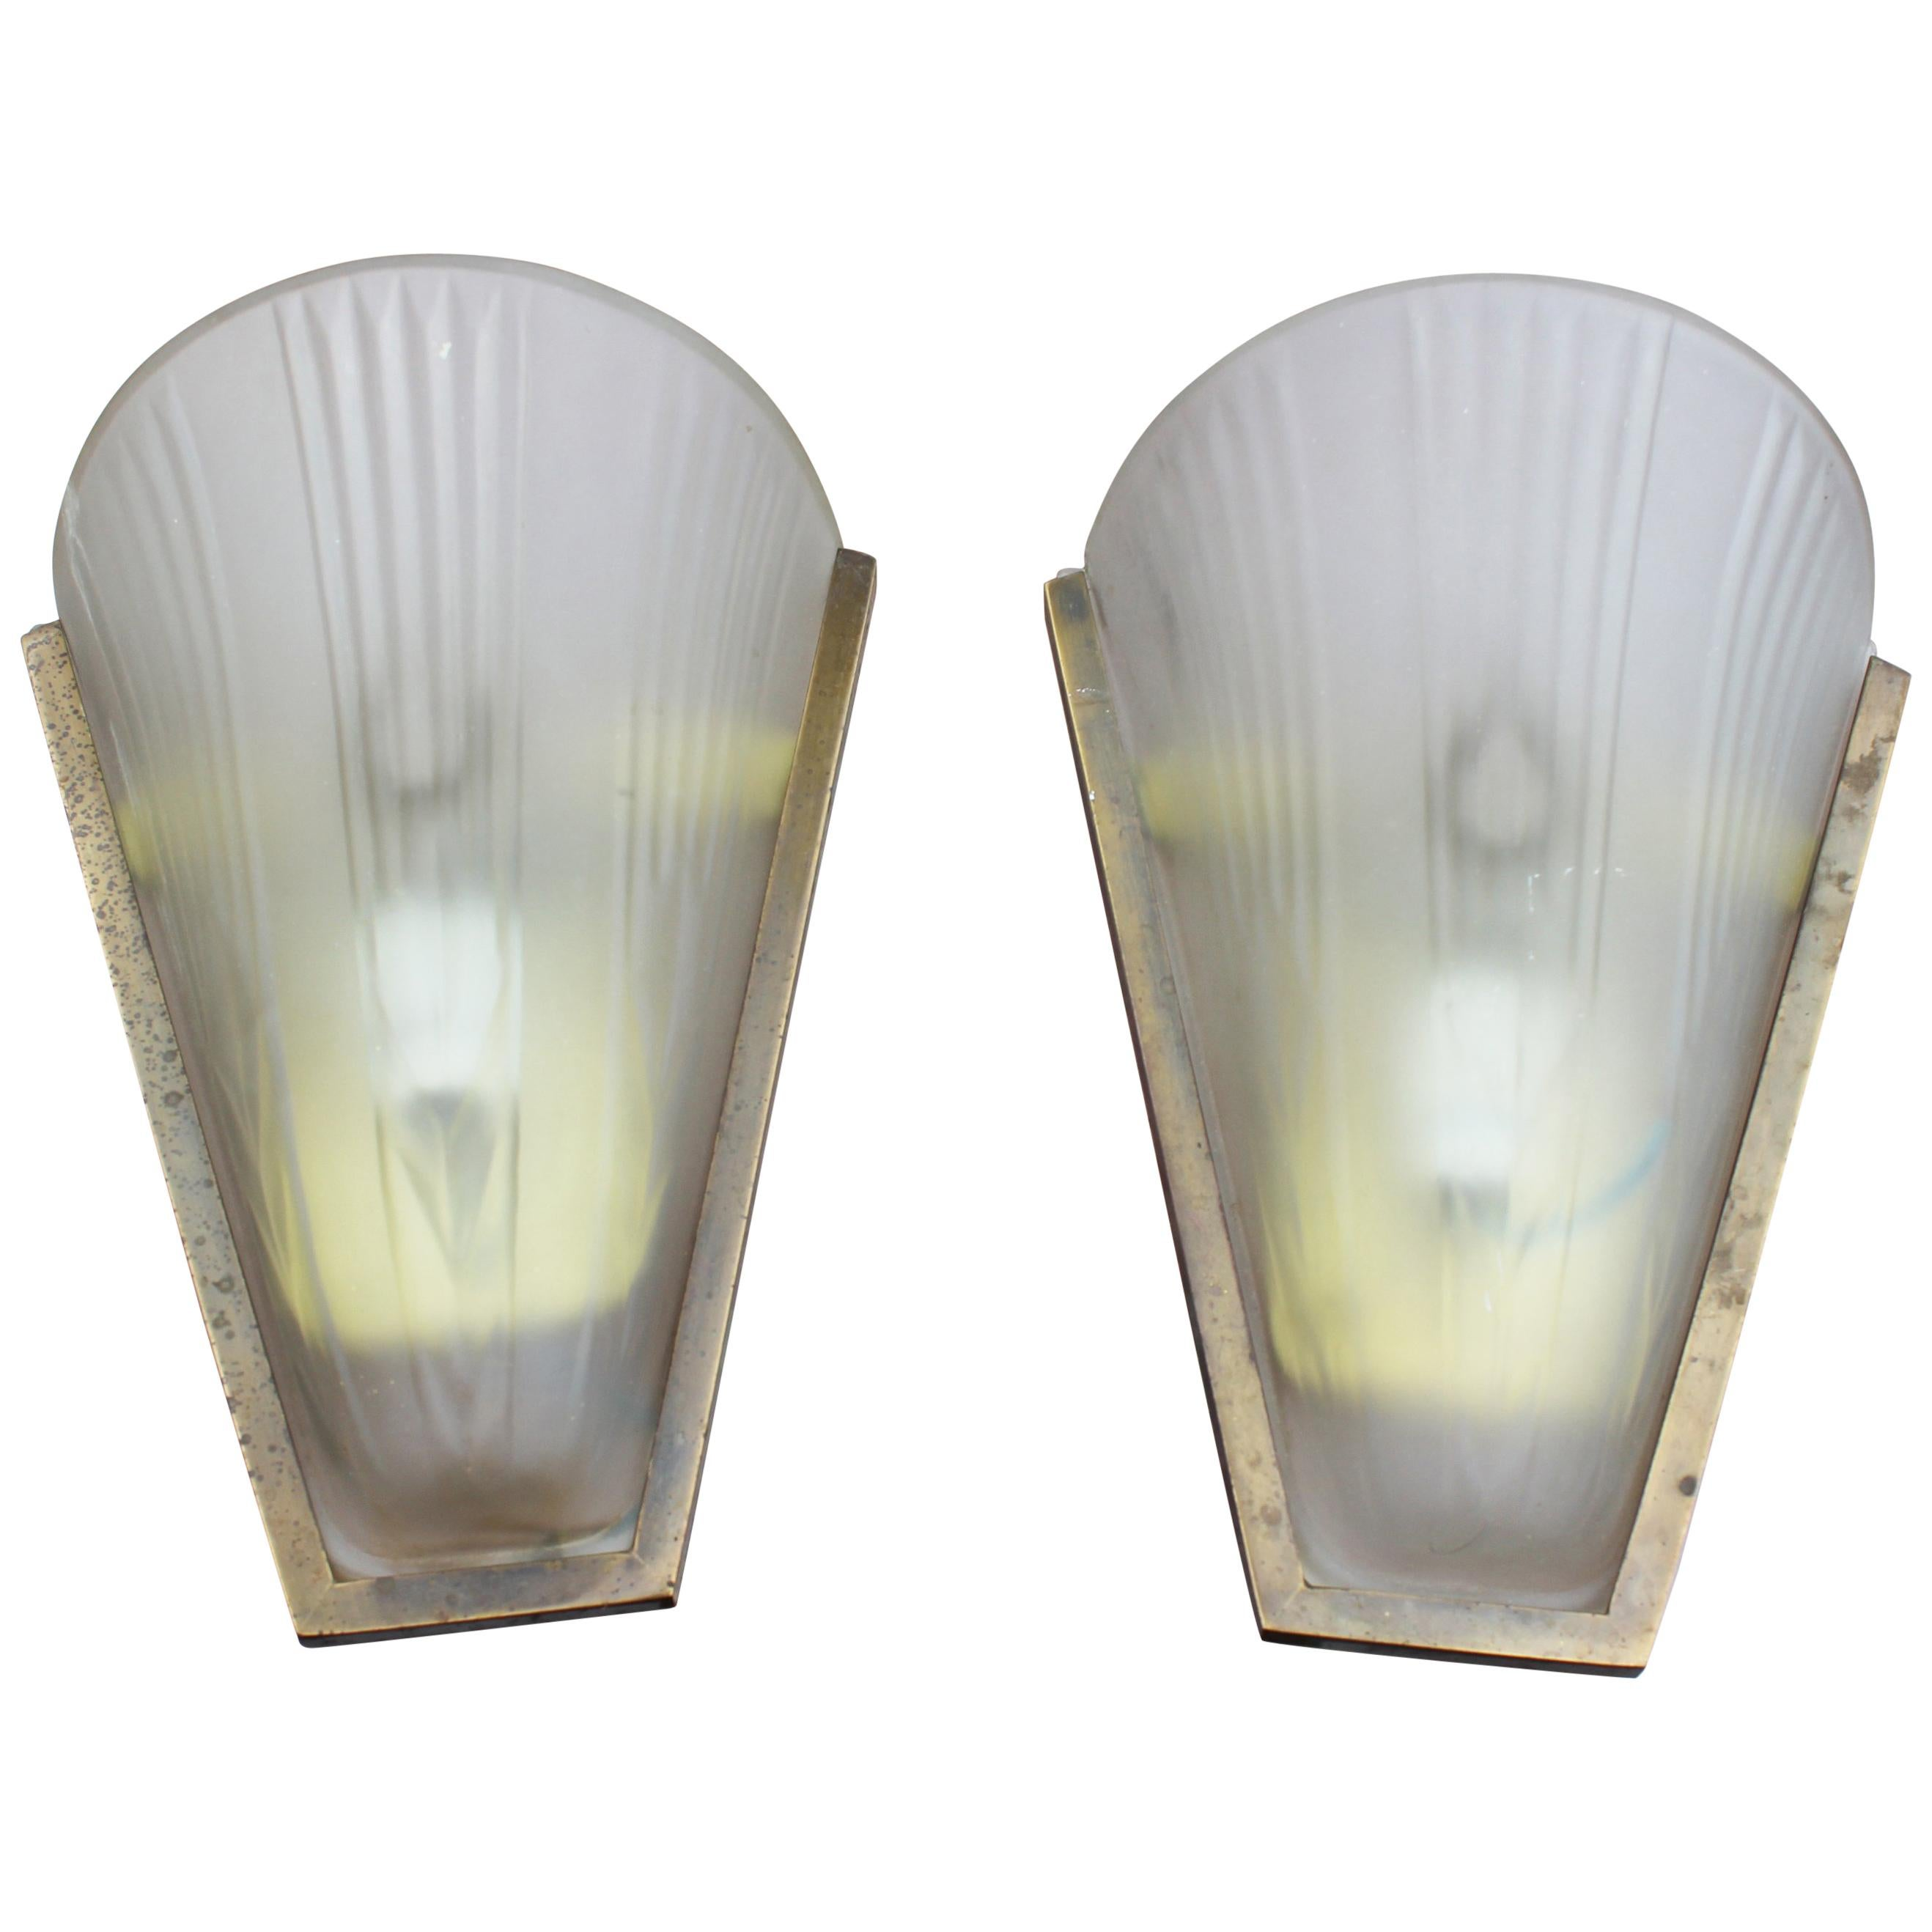 Pair of Italian Brass and Glass Wall Lamps, 1950s